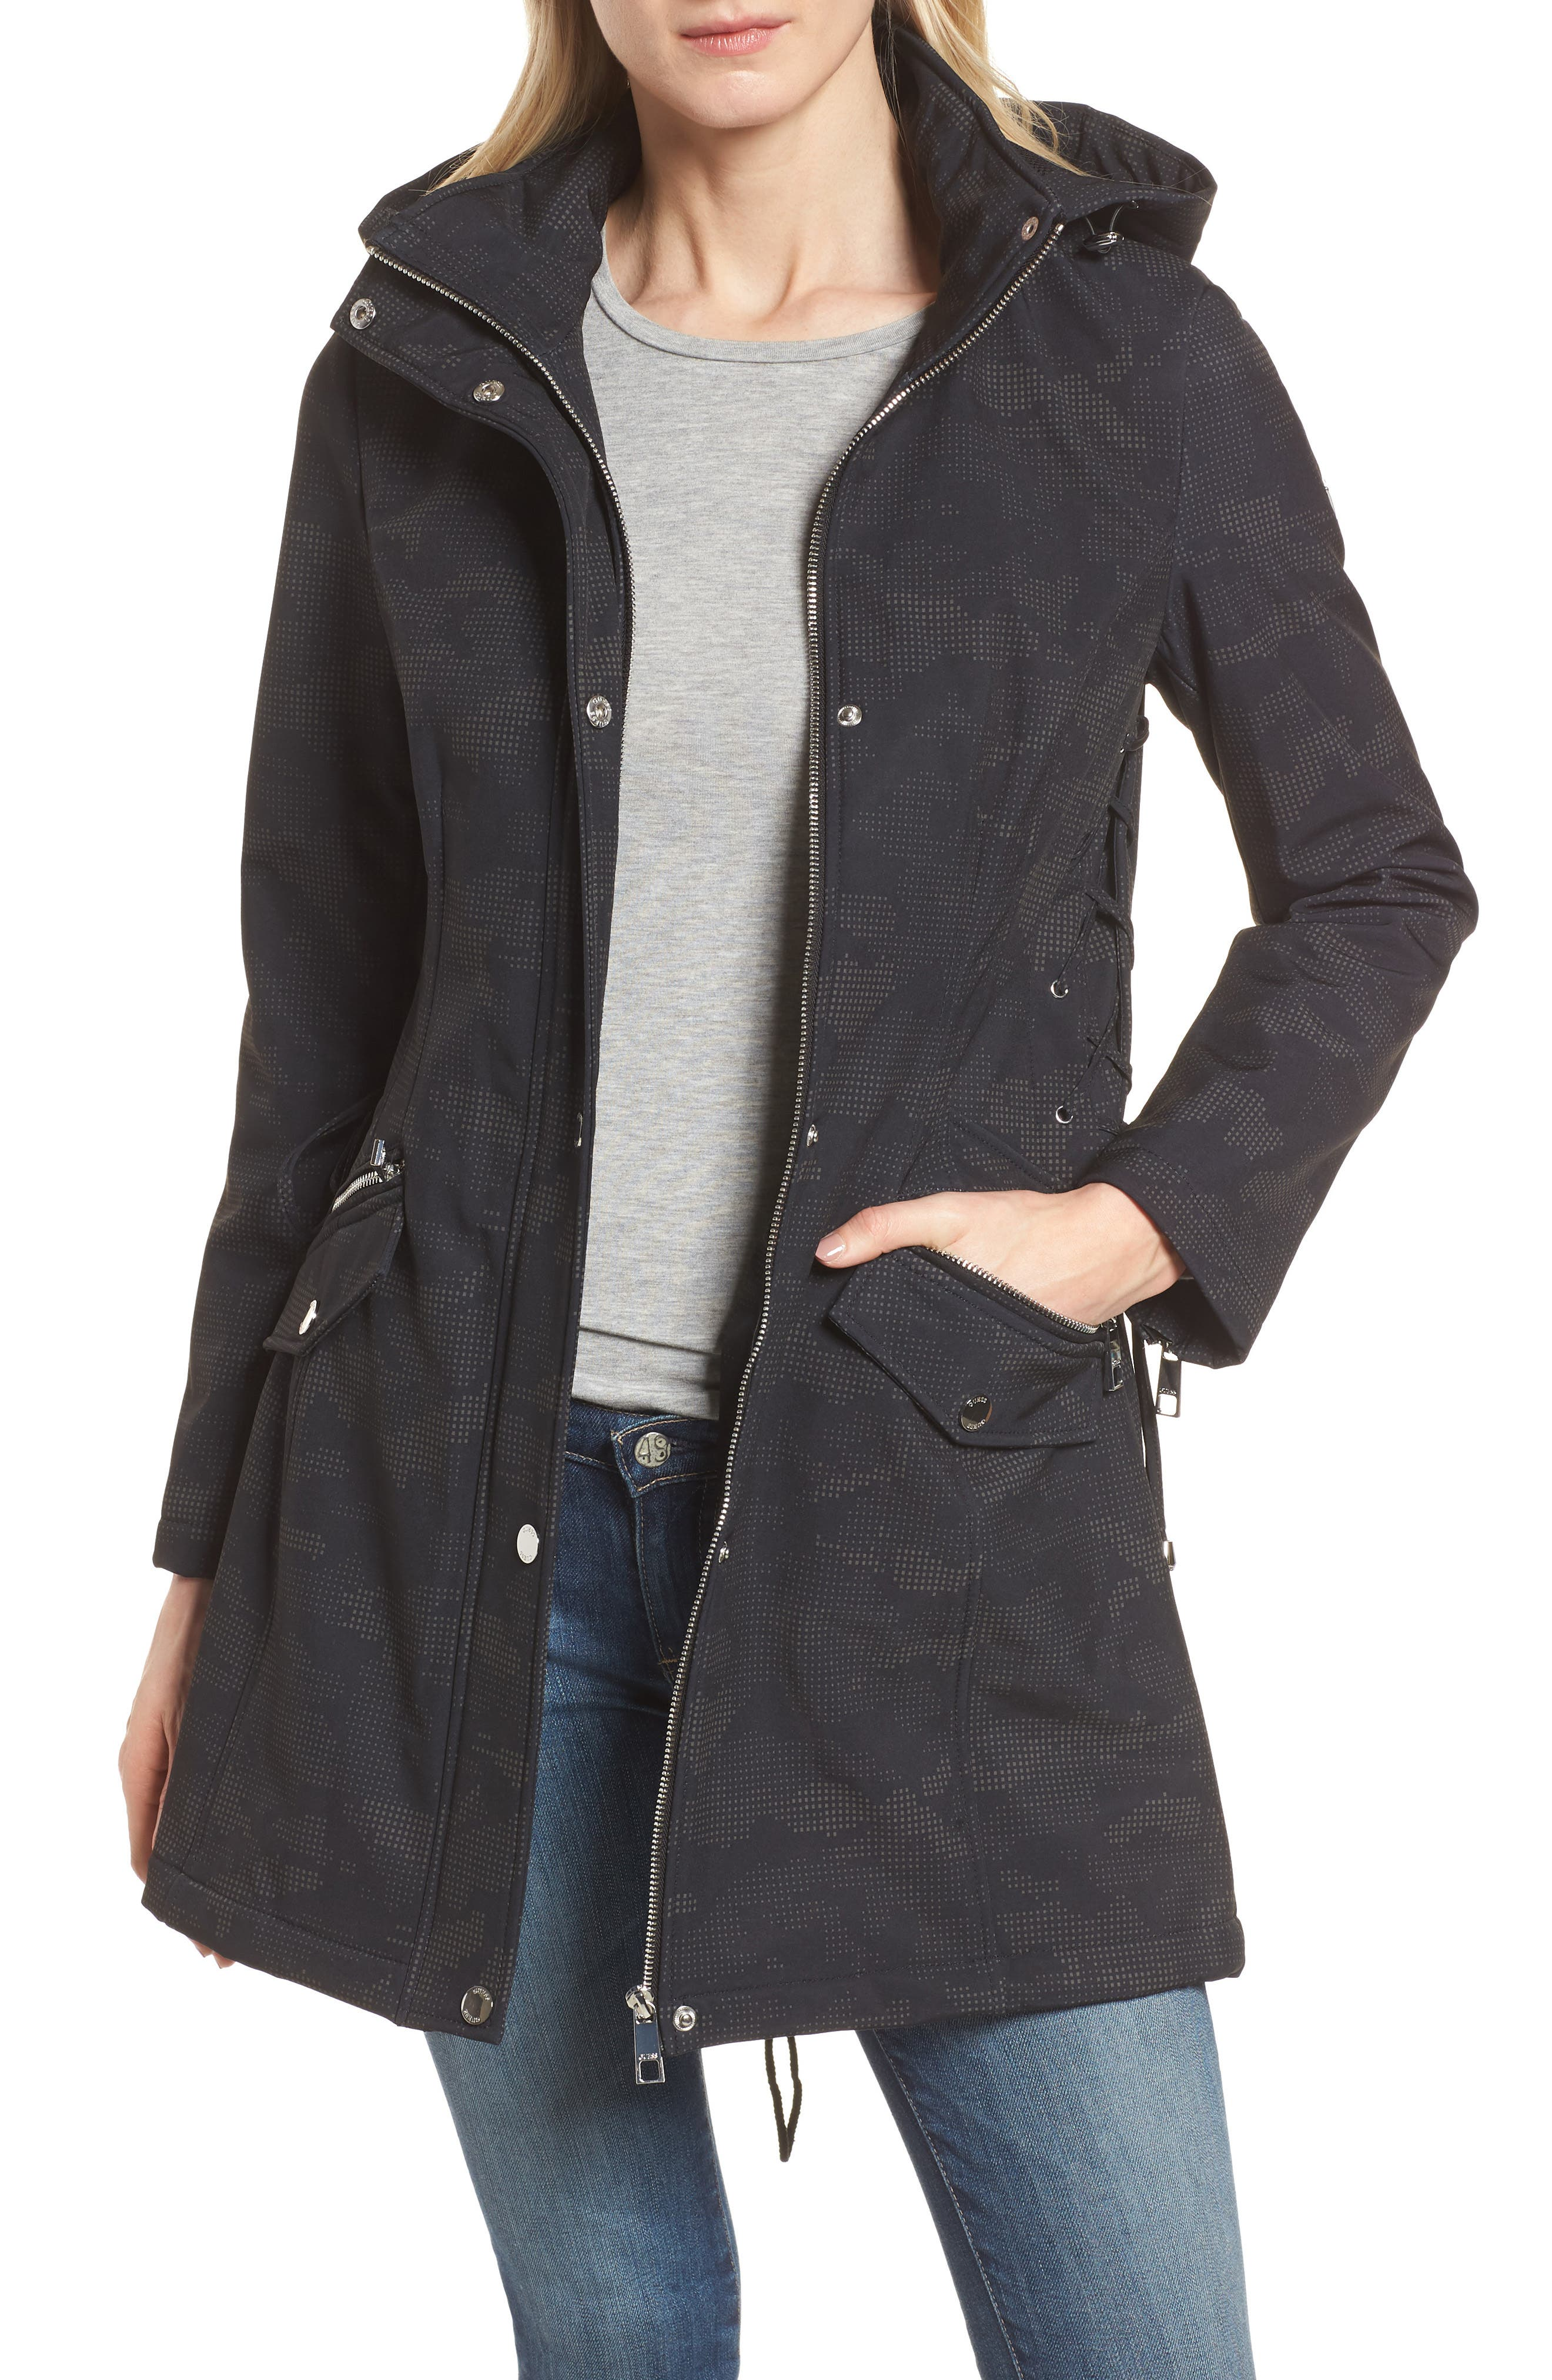 Lace-Up Hooded Jacket,                         Main,                         color, Black Print